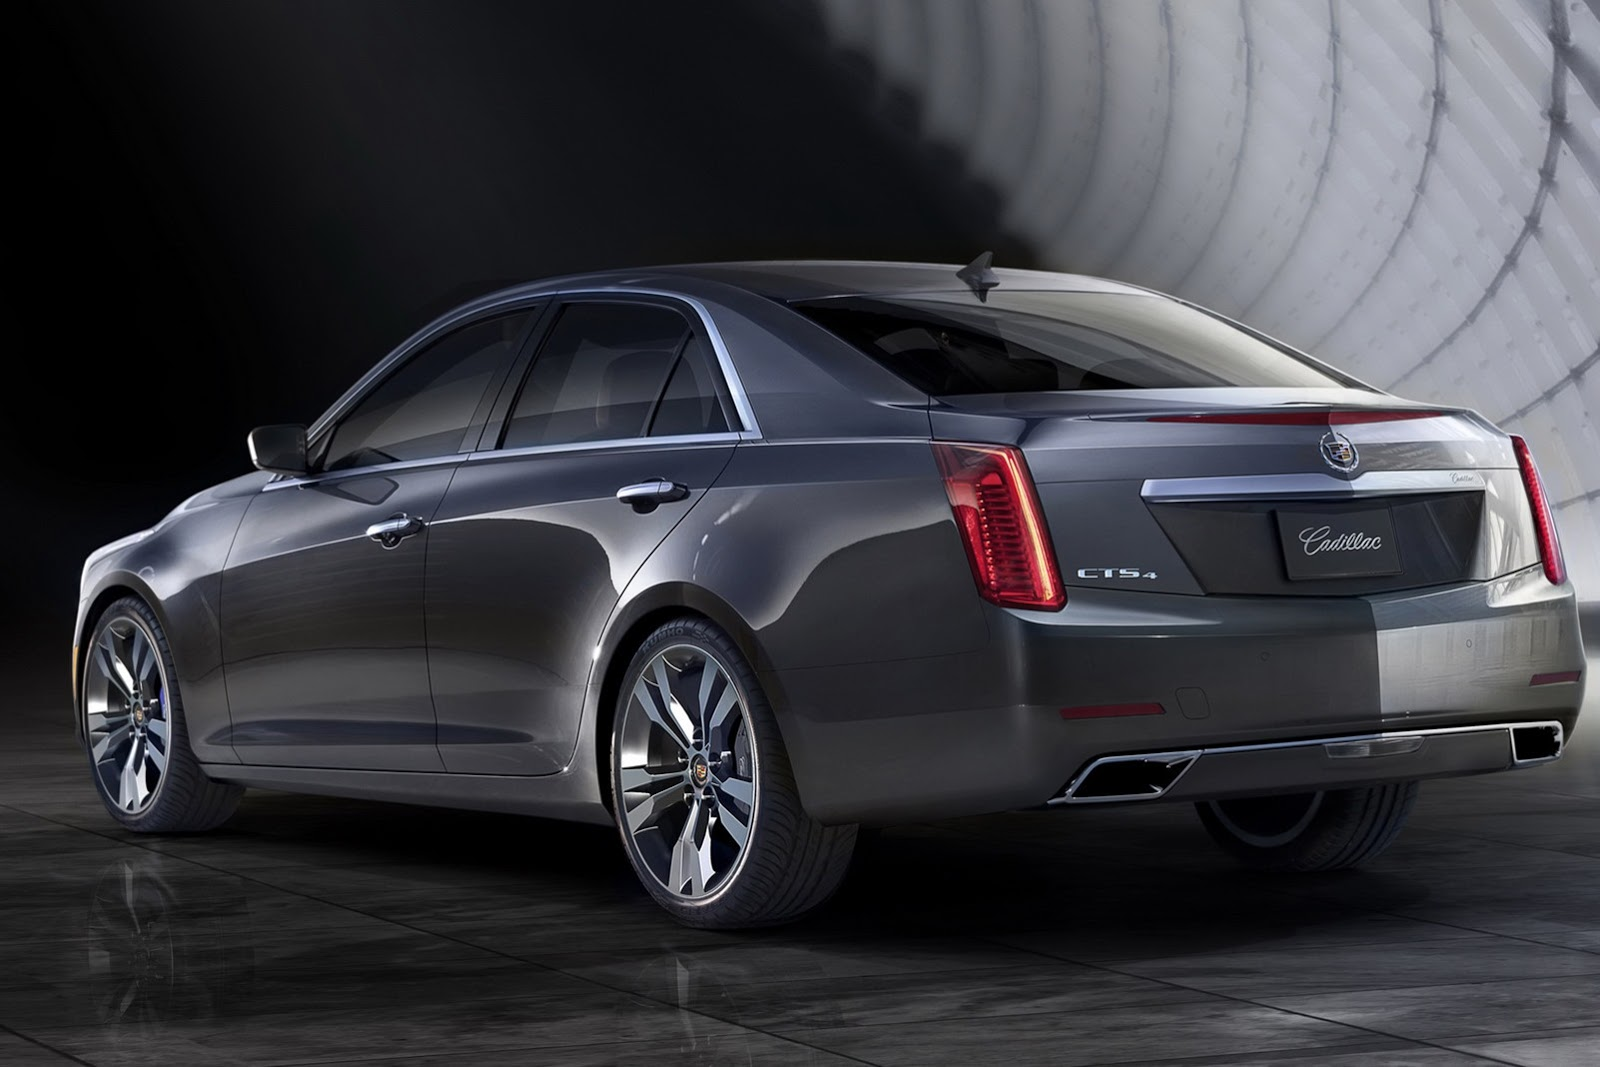 2014 Cadillac CTS Revealed in New York - autoevolution